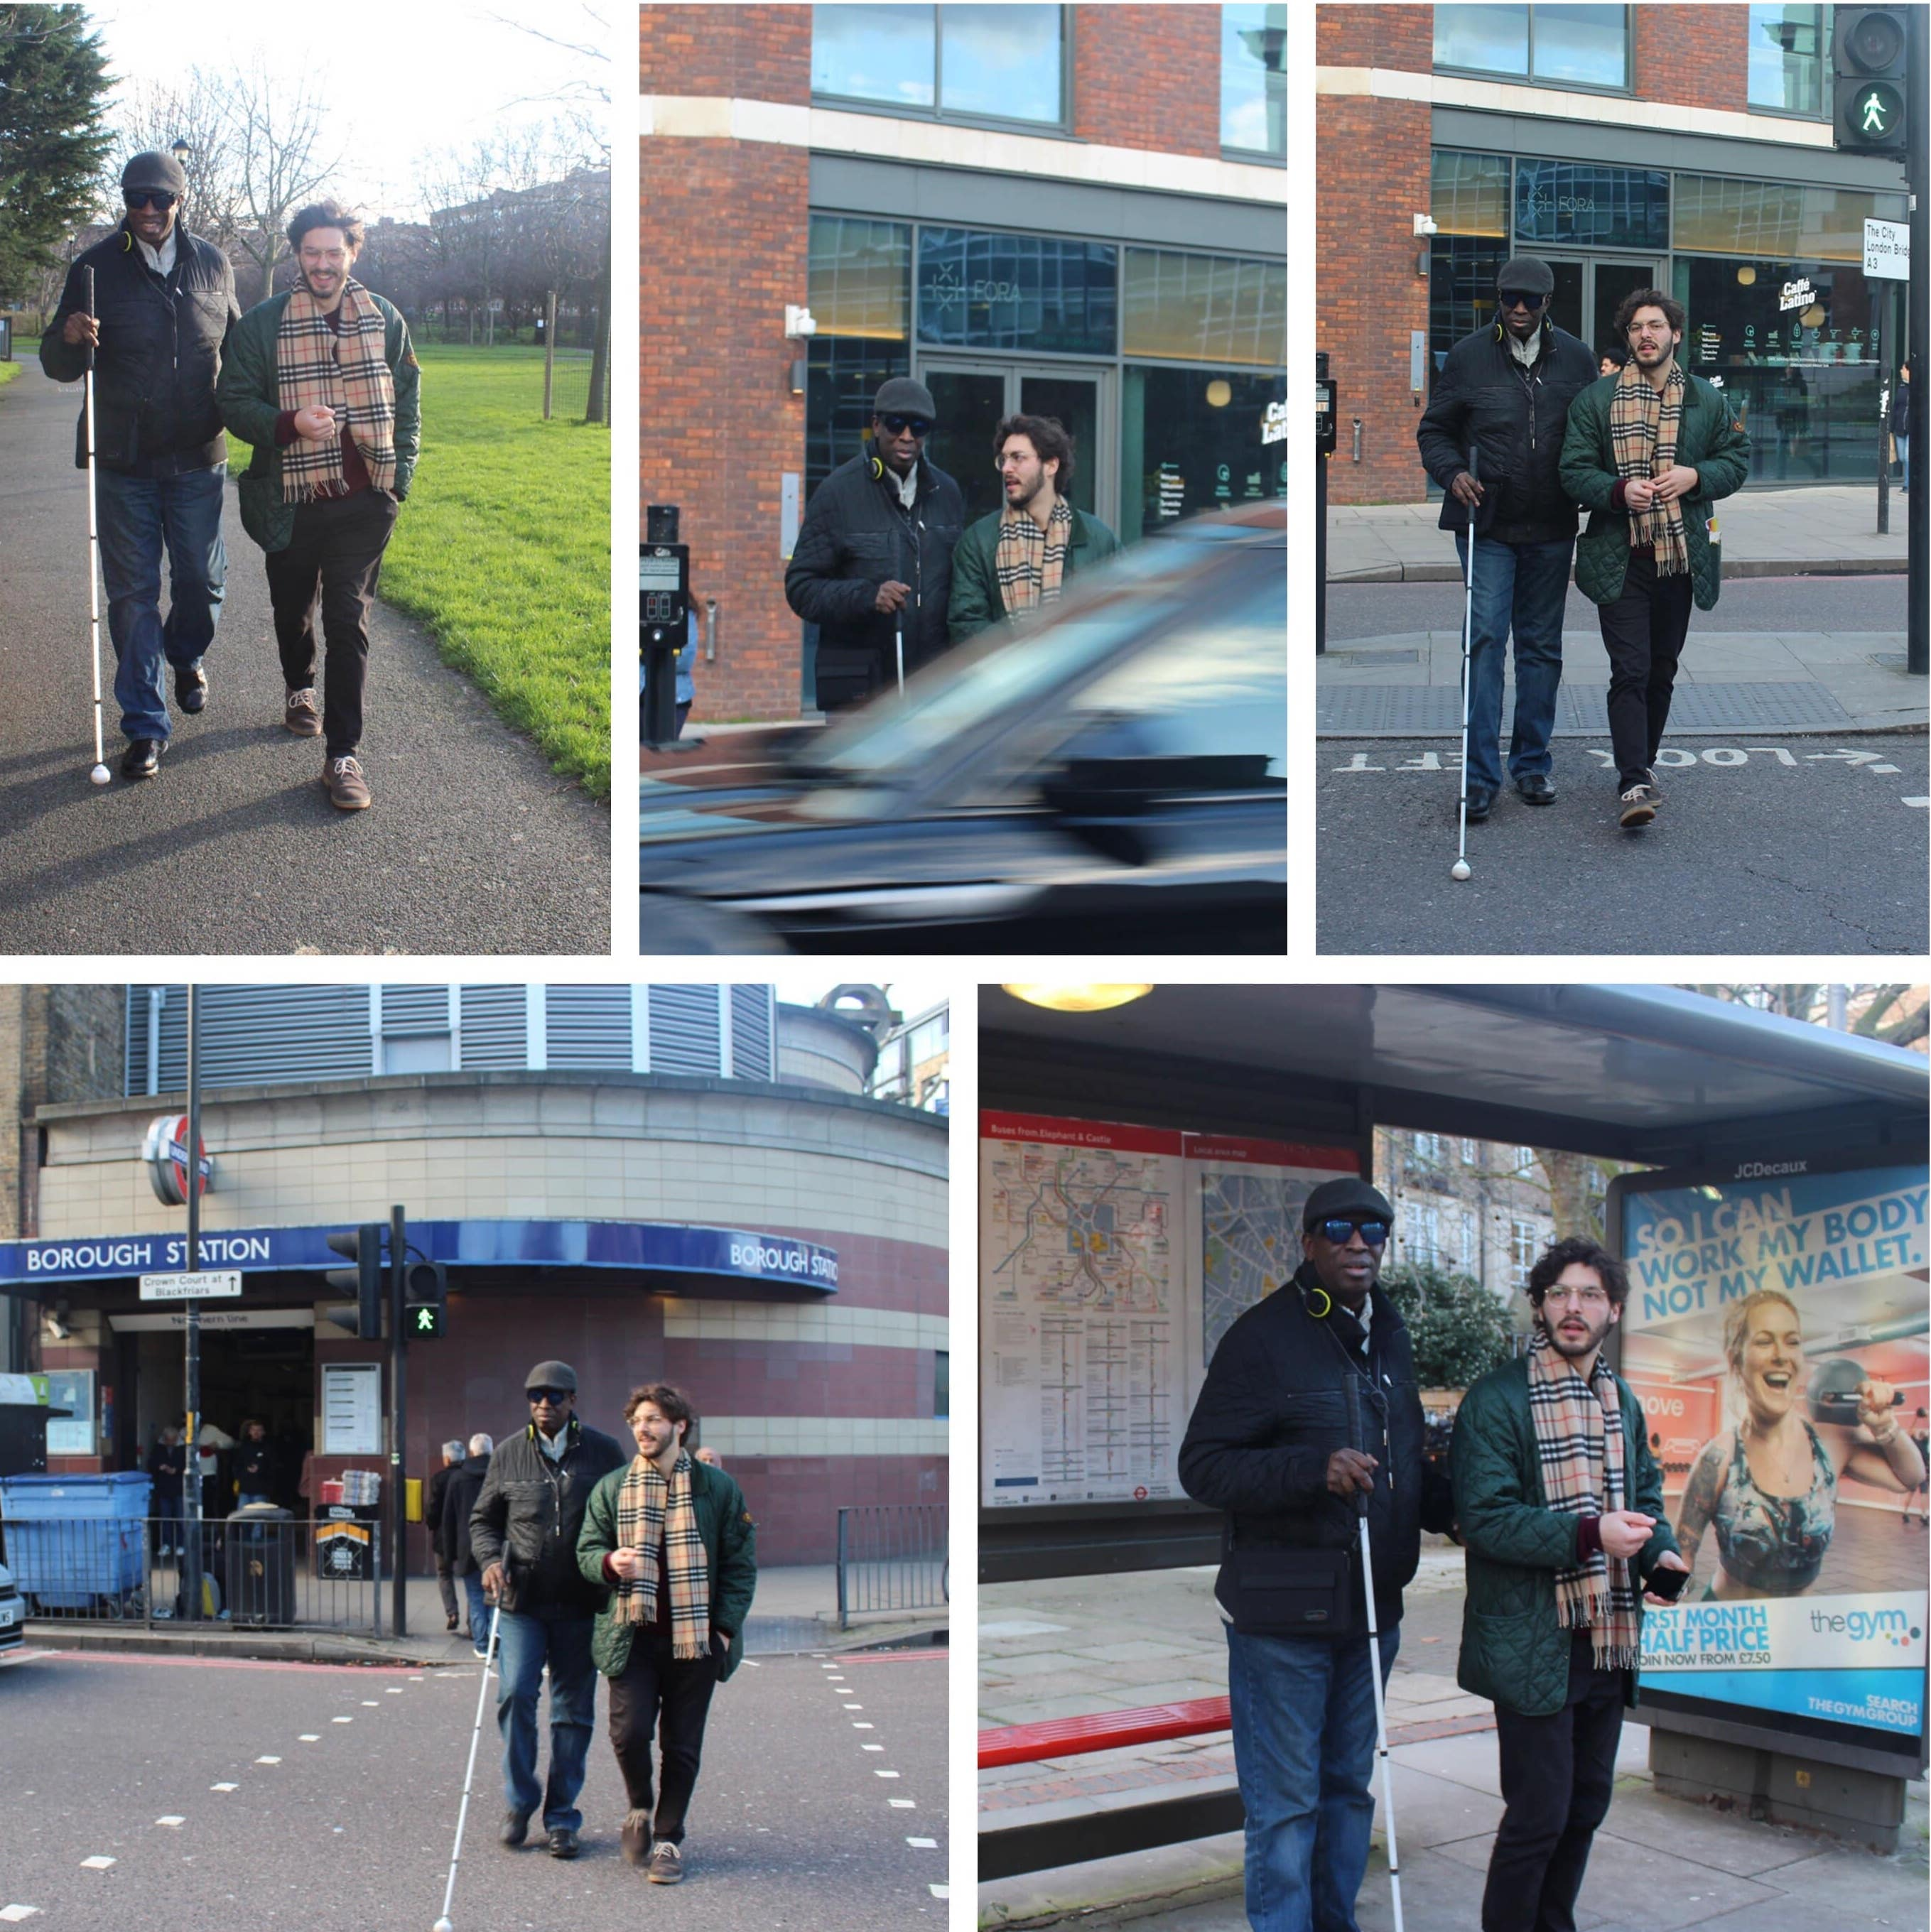 collage of photos from volunteer's and visually impaired person journey